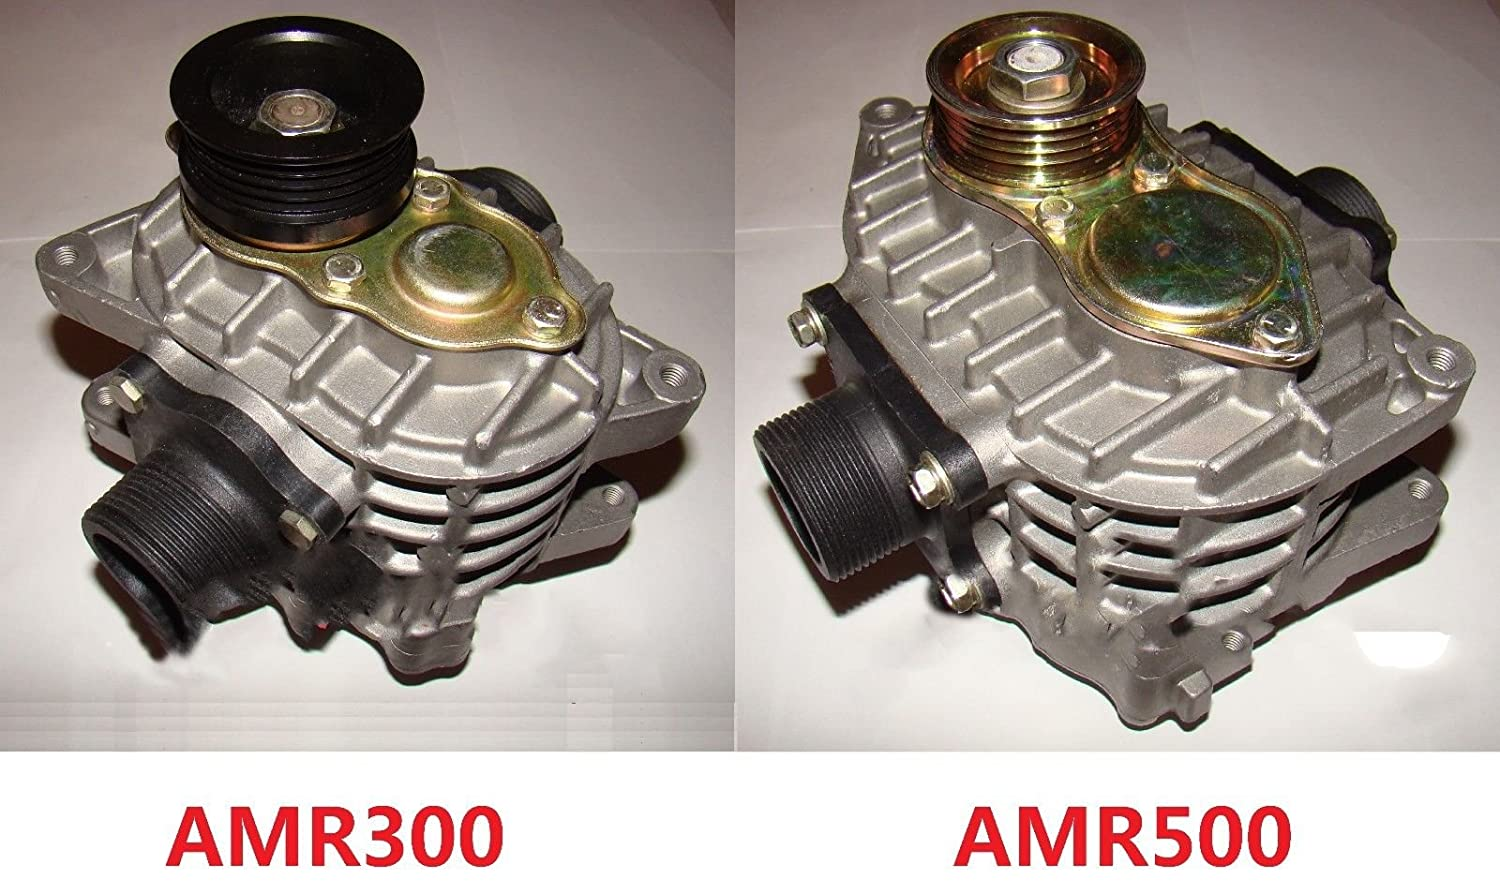 GOWE Turbocompresor para coche motos ATV Mini raíces Supercharger Kompressor Turbocompresor turbina Compresor soplador Booster 0.5 - 1.5L Aisin amr300: ...